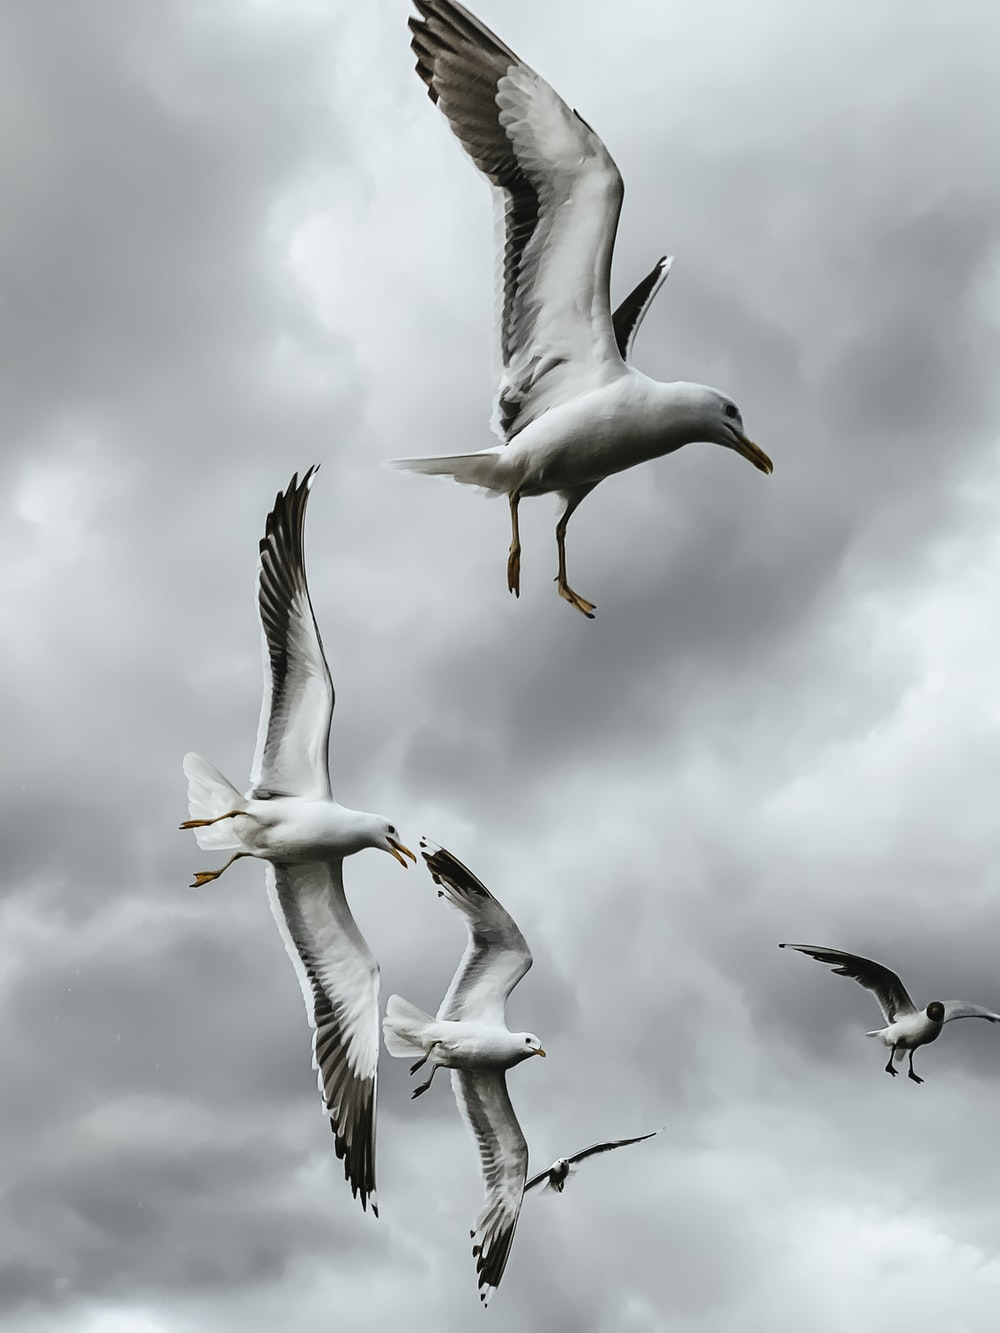 white and gray seagulls at flight